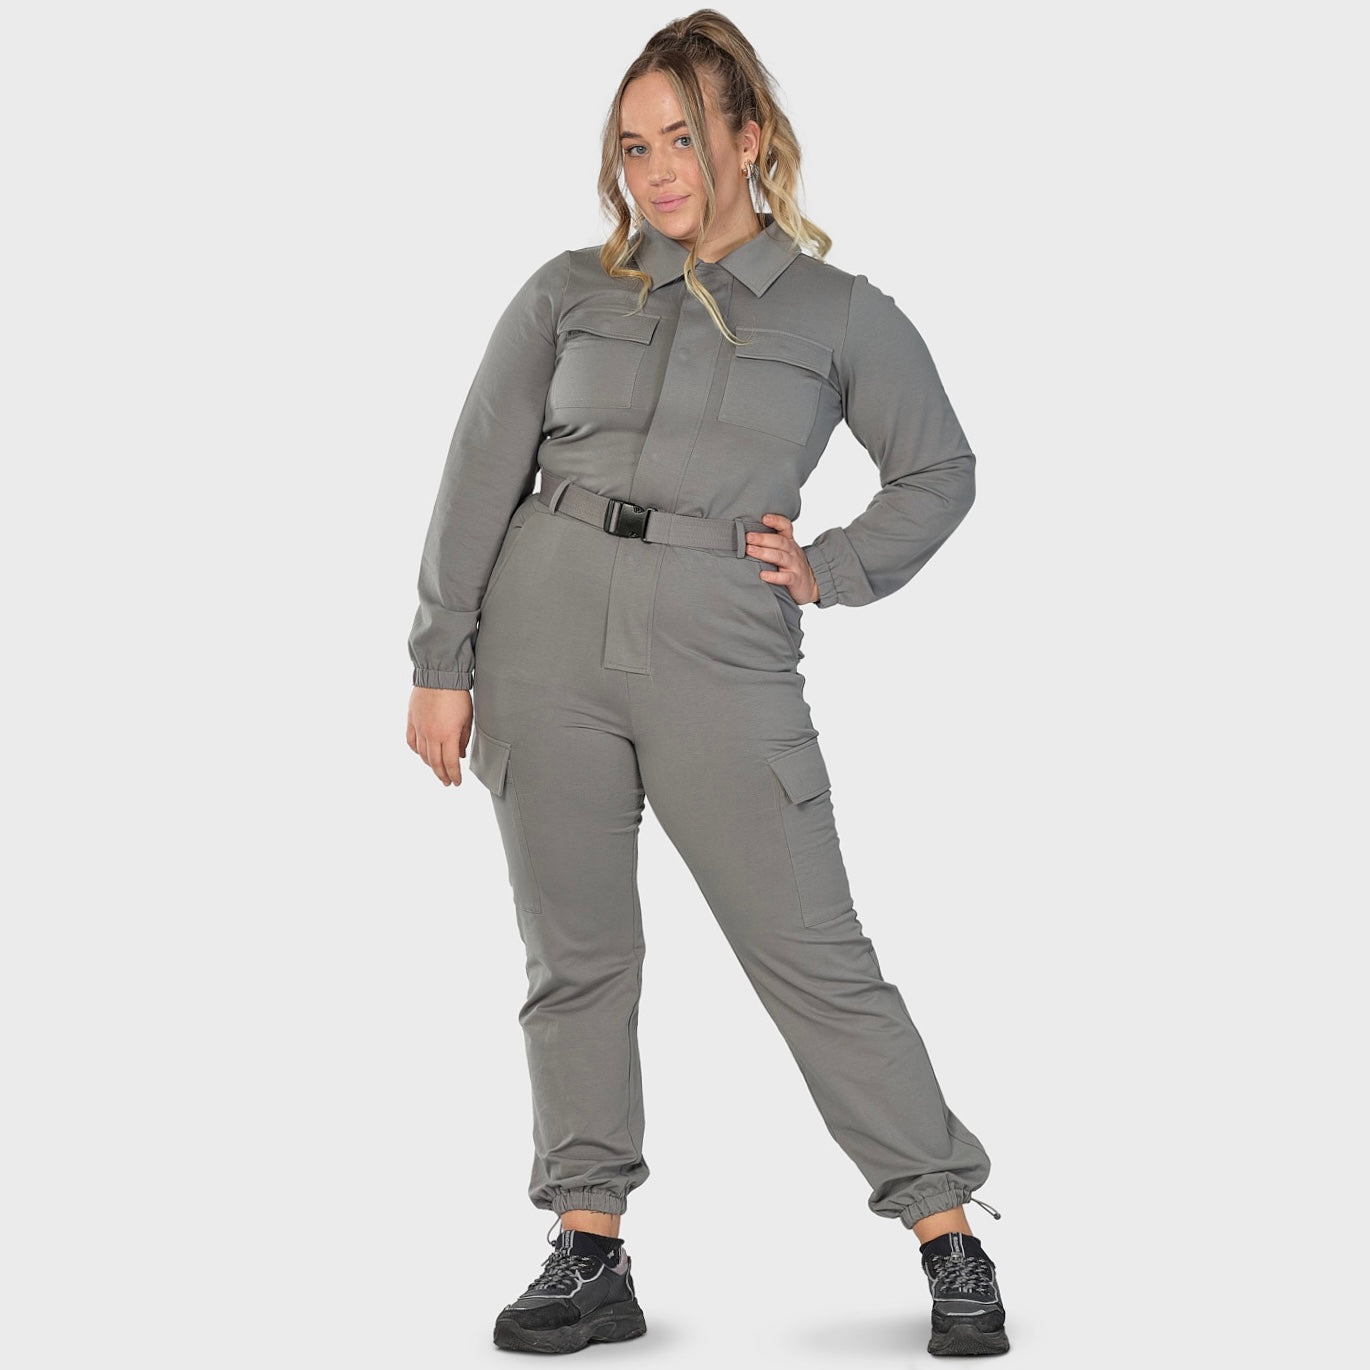 Soft jumpsuit (m/belte) - gray